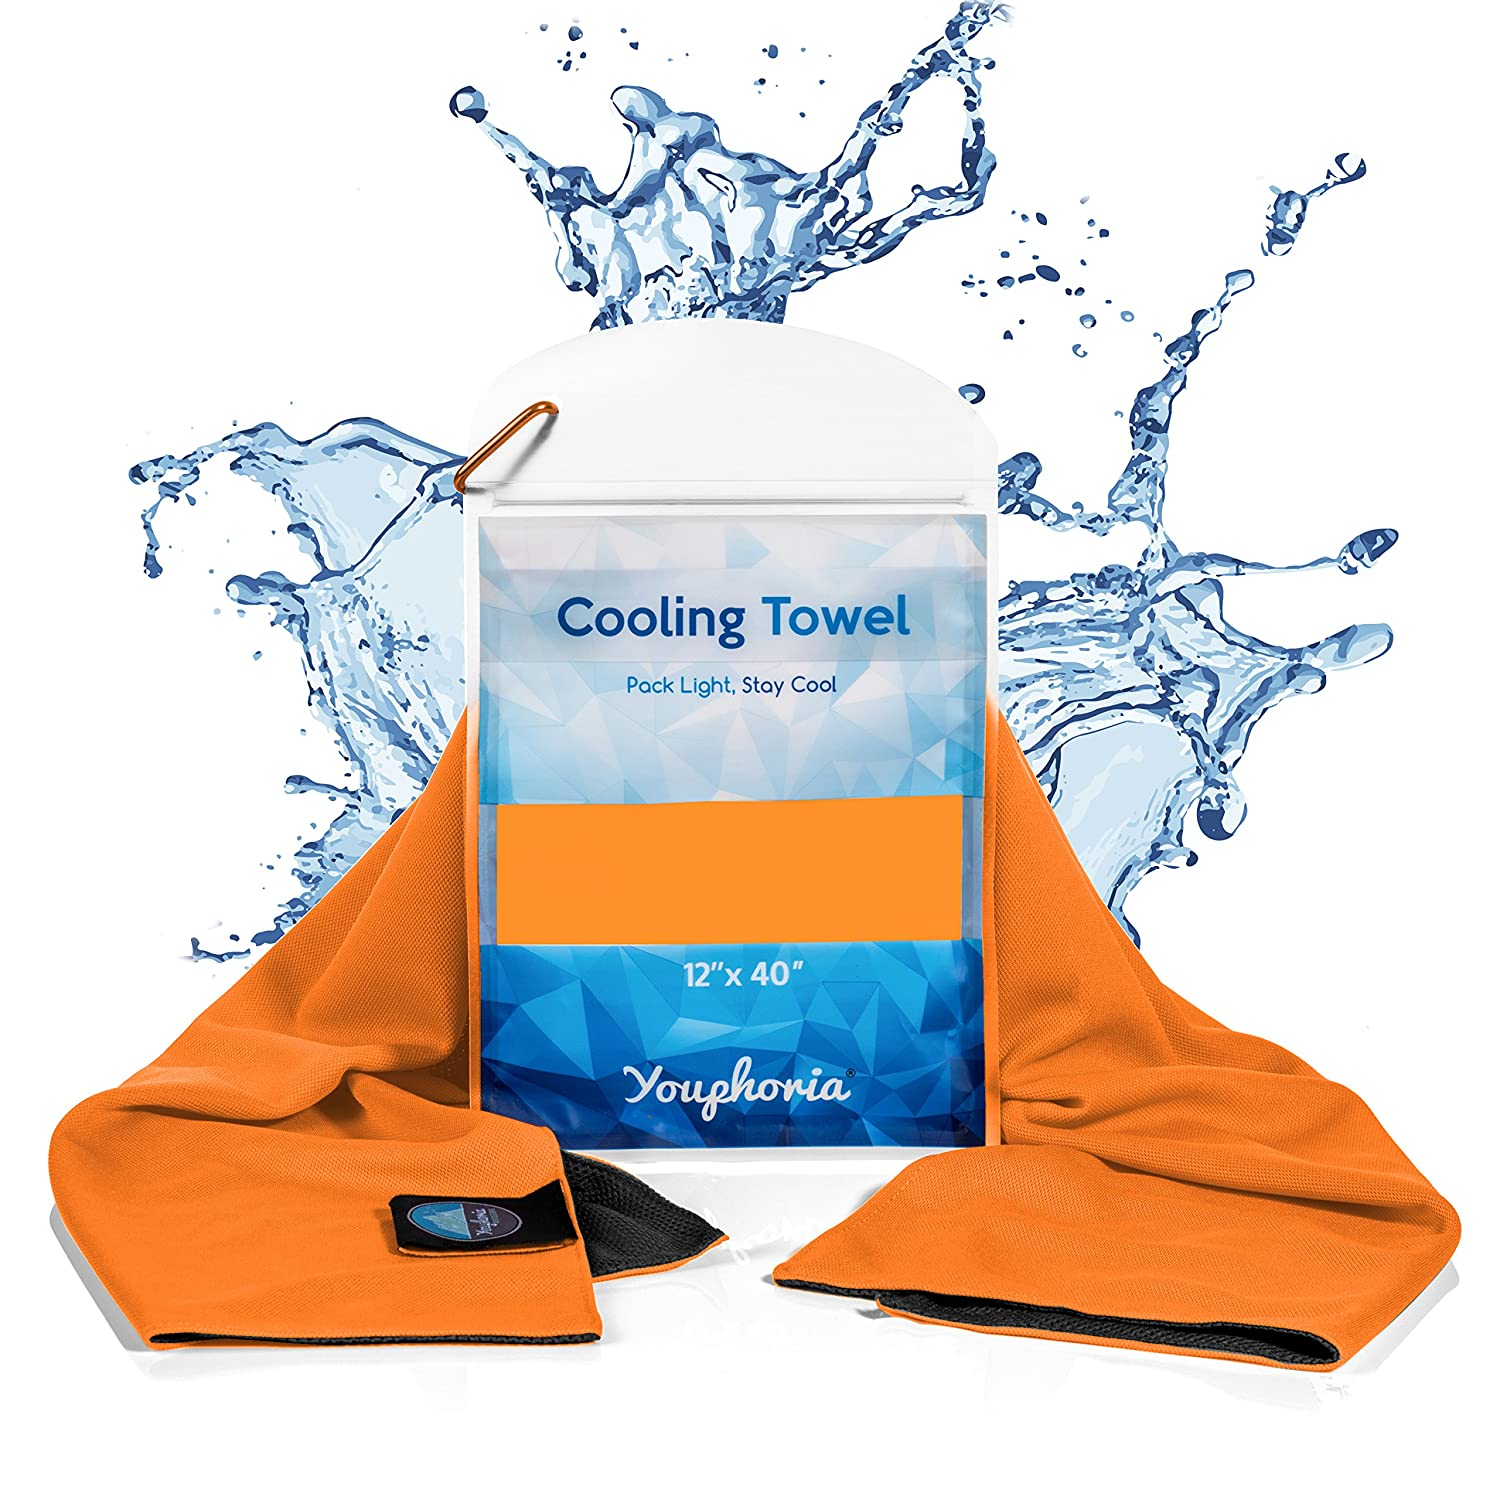 Youphoria Outdoors Cooling Towel, Cooling Towel for Hot Weather, Over Heating, Sports, Work, and Fatigue, Waterproof Carry Case Included - 1PK